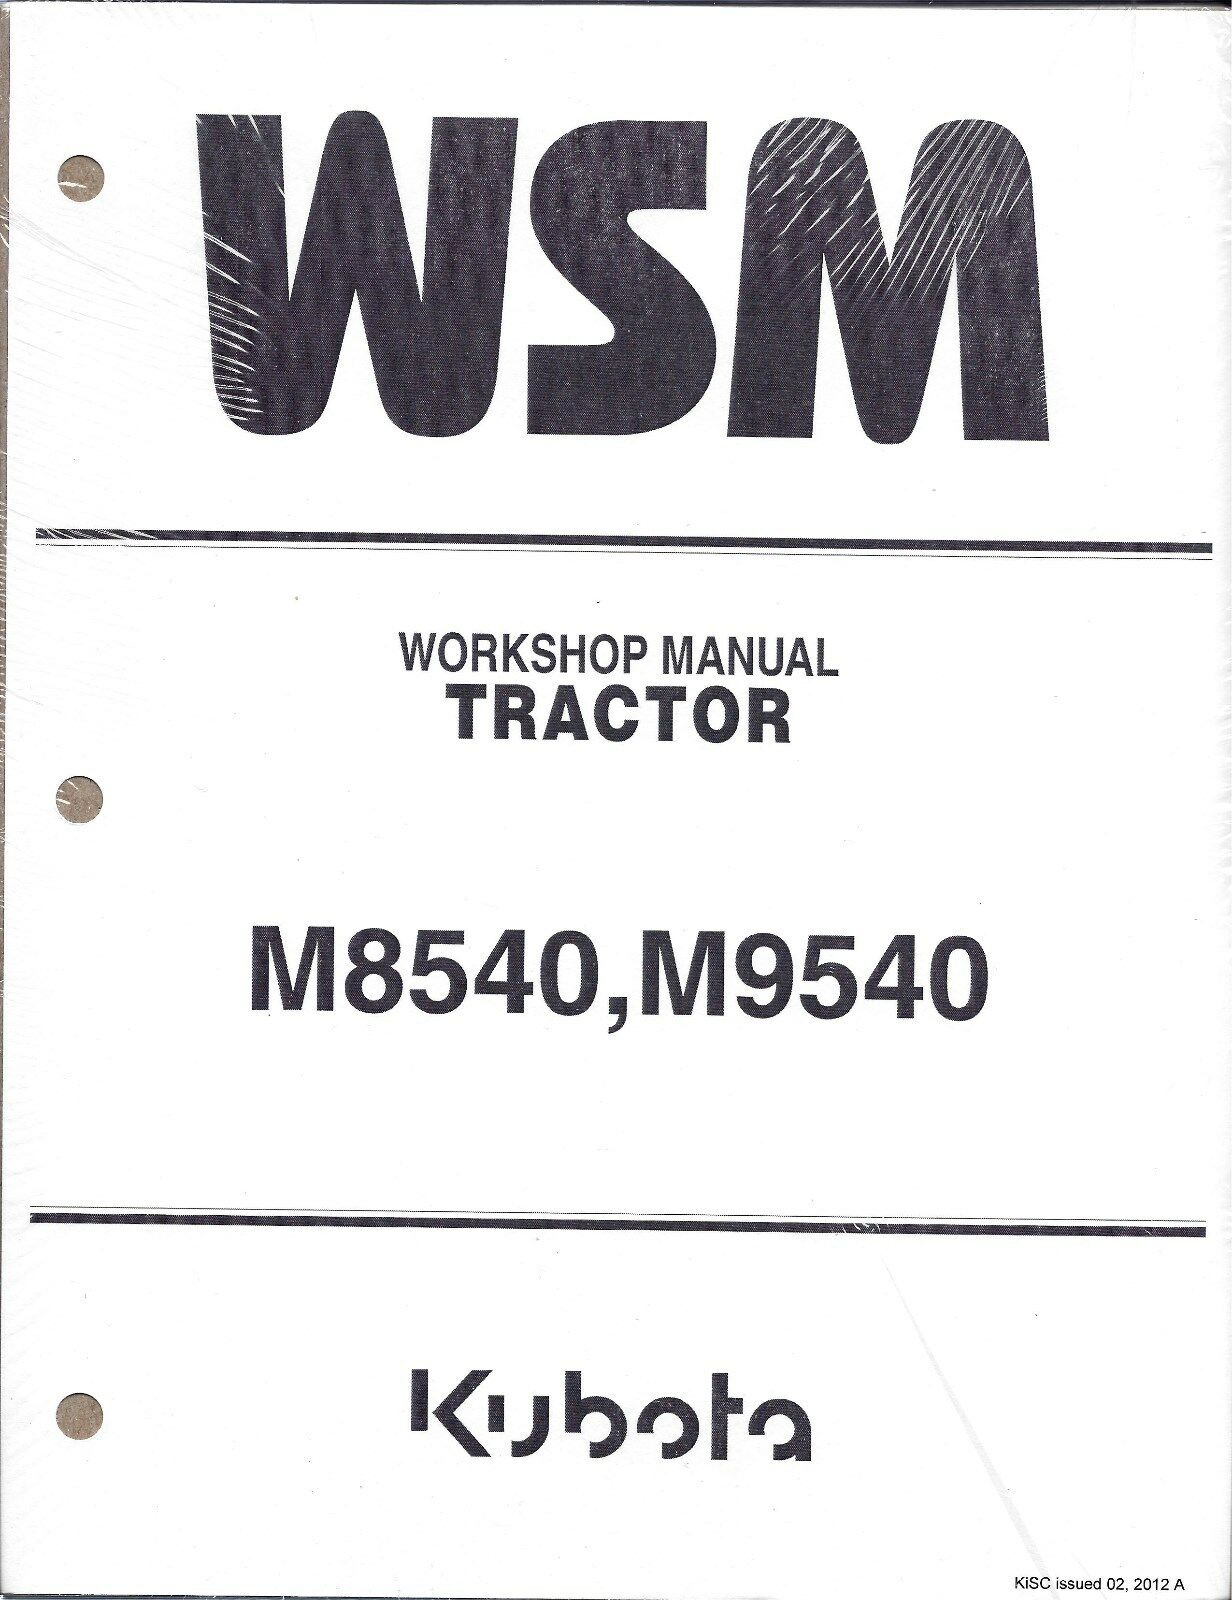 s l1600 kubota l3430 wiring diagram kubota l5030 specs \u2022 indy500 co  at bayanpartner.co